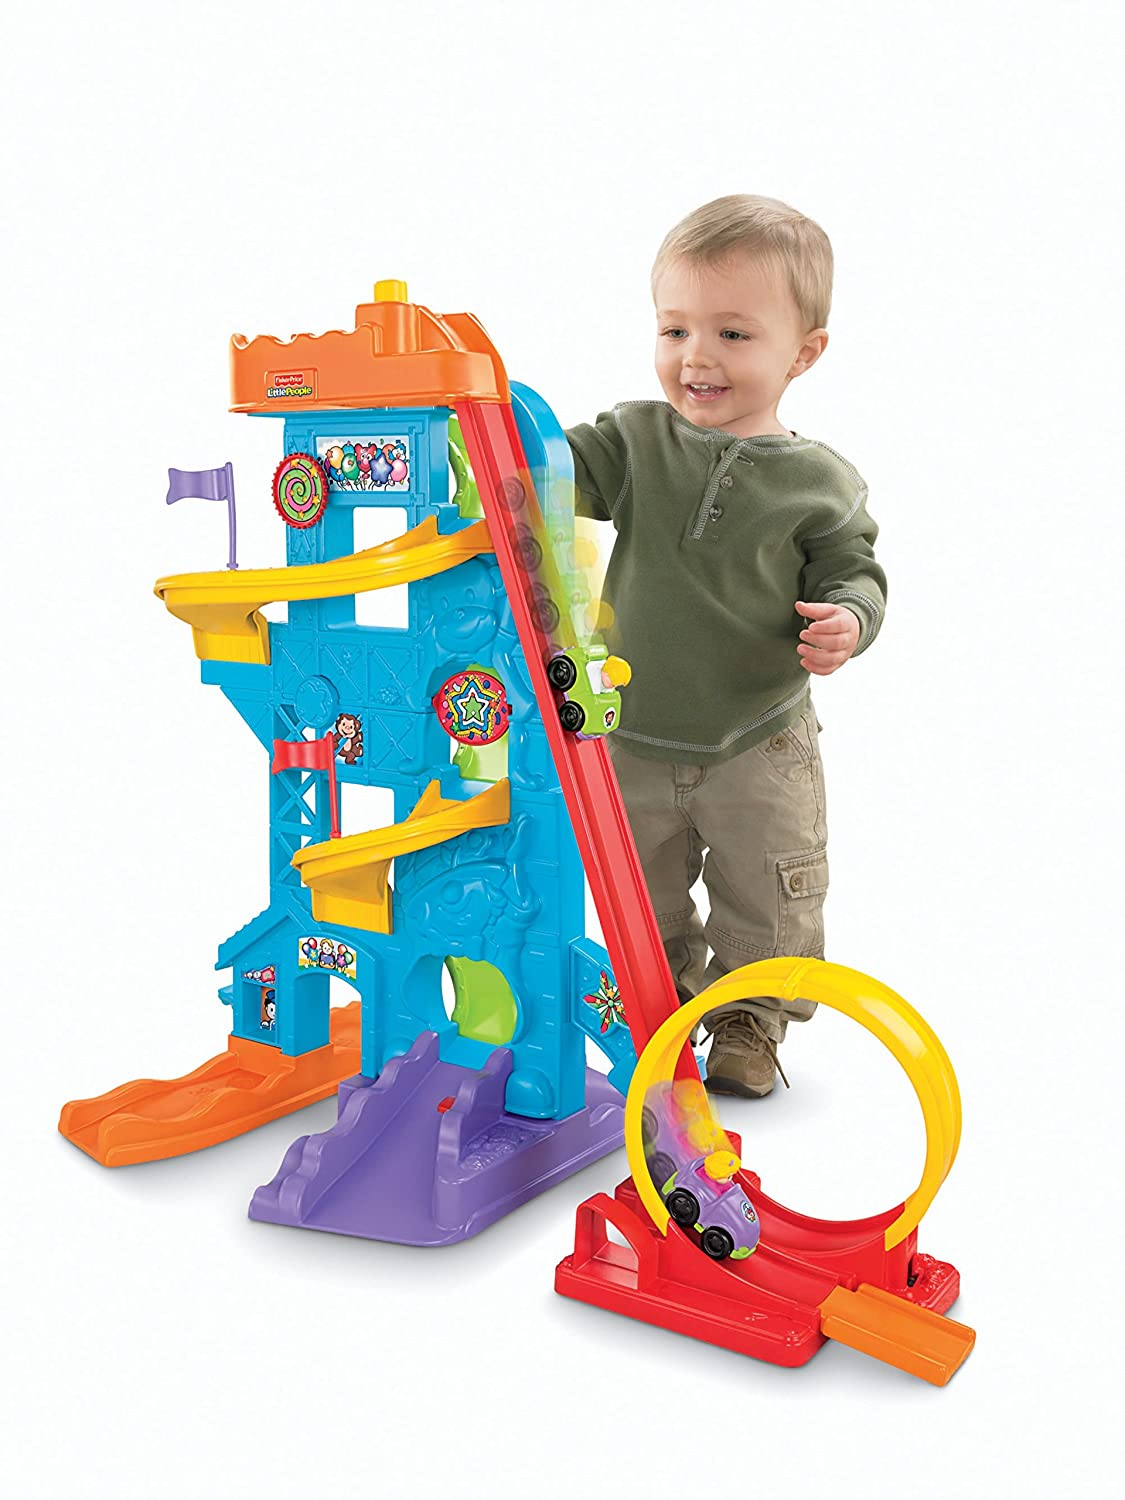 Fun Activity For  Year Old Boy Who Loves Cars